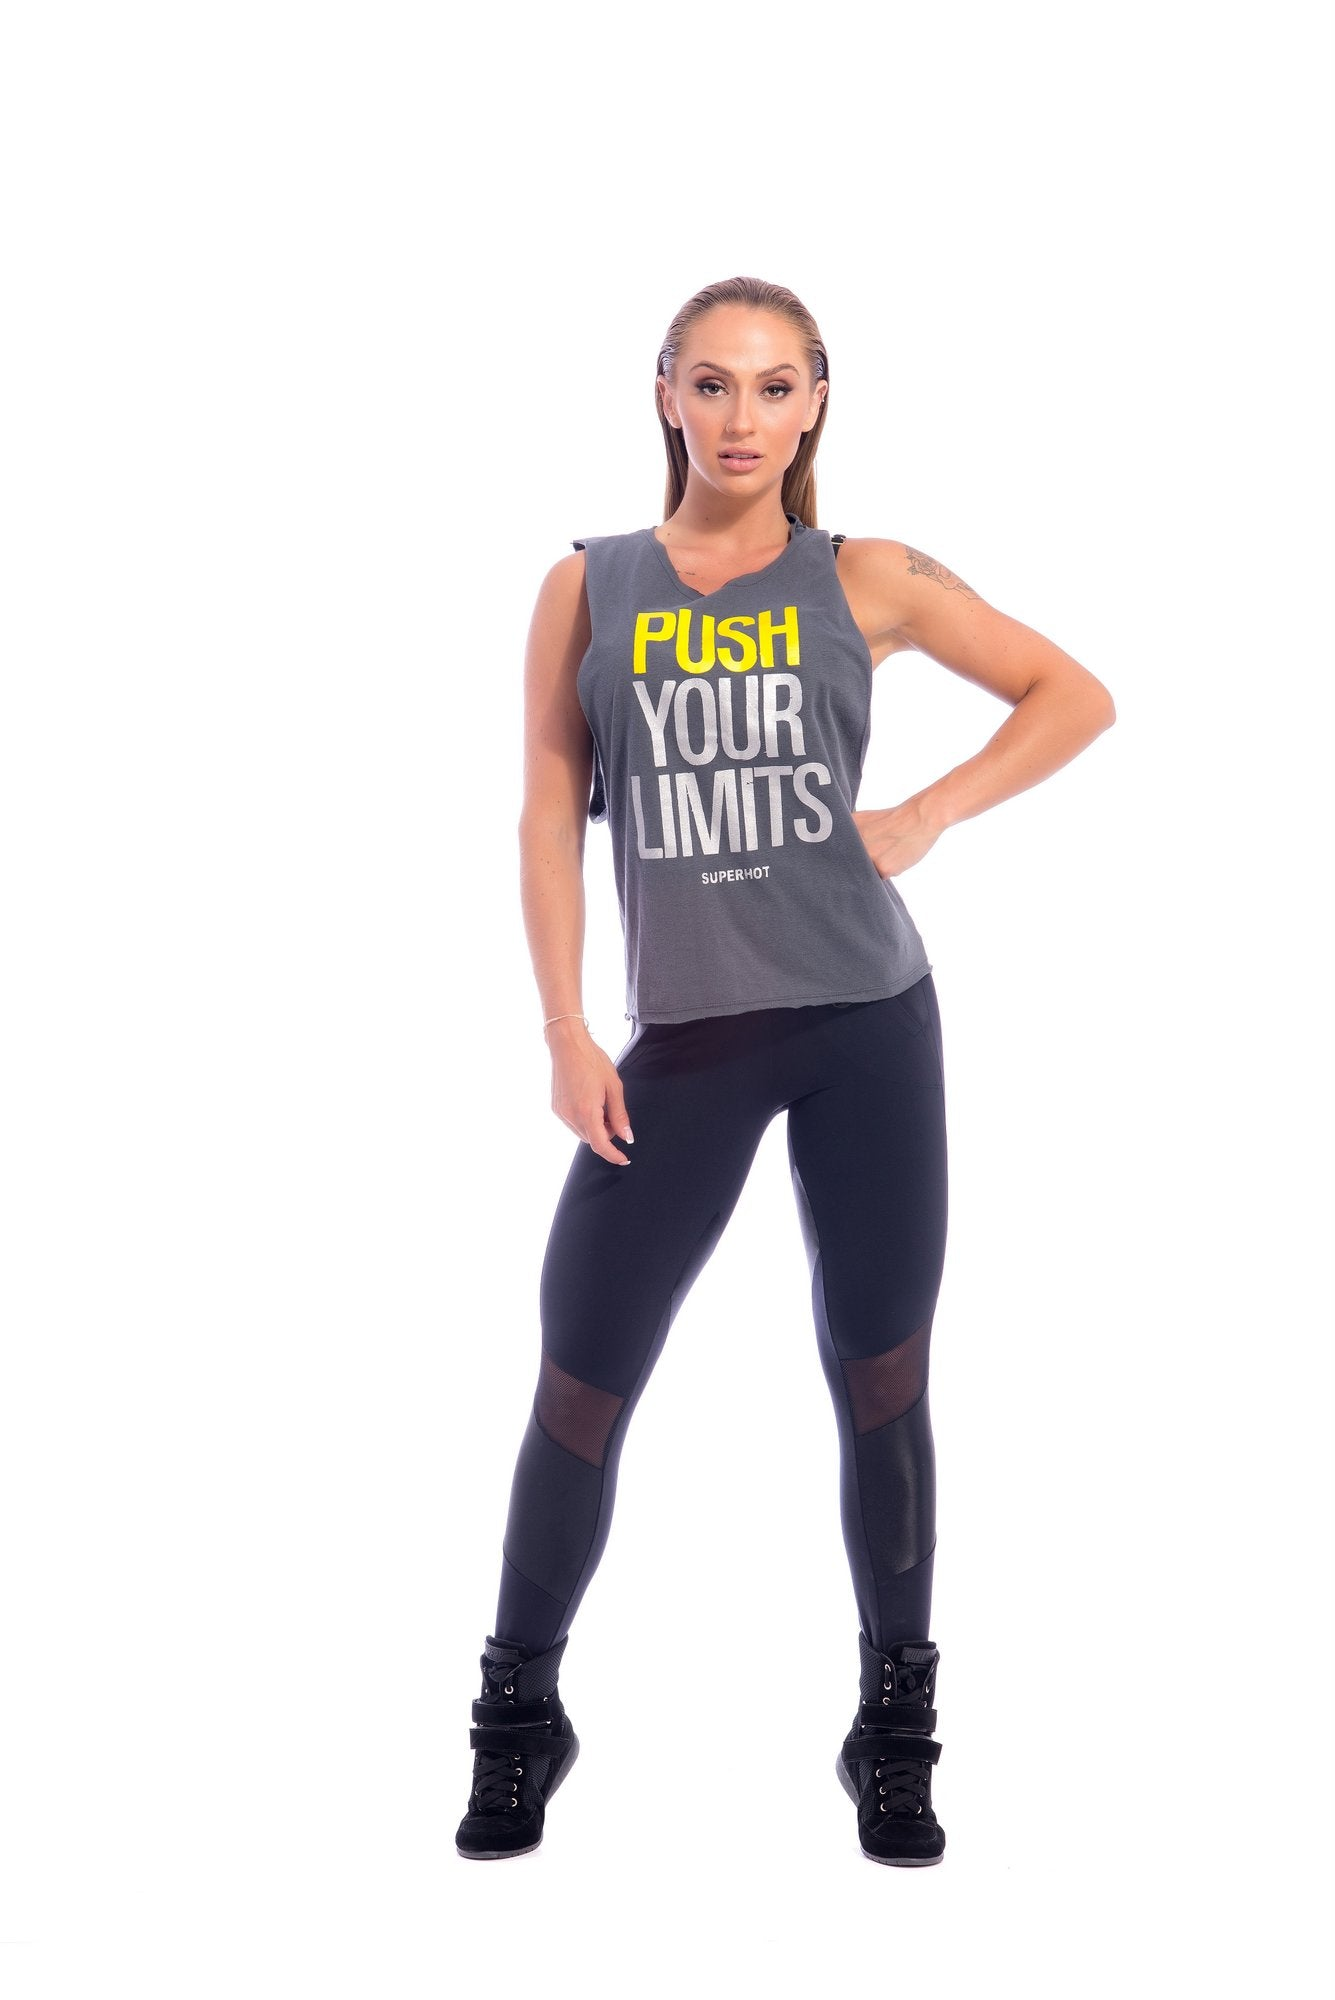 Push Your Limits Tank Top - PRE ORDER ONLY - SUPERHOT - FitZee